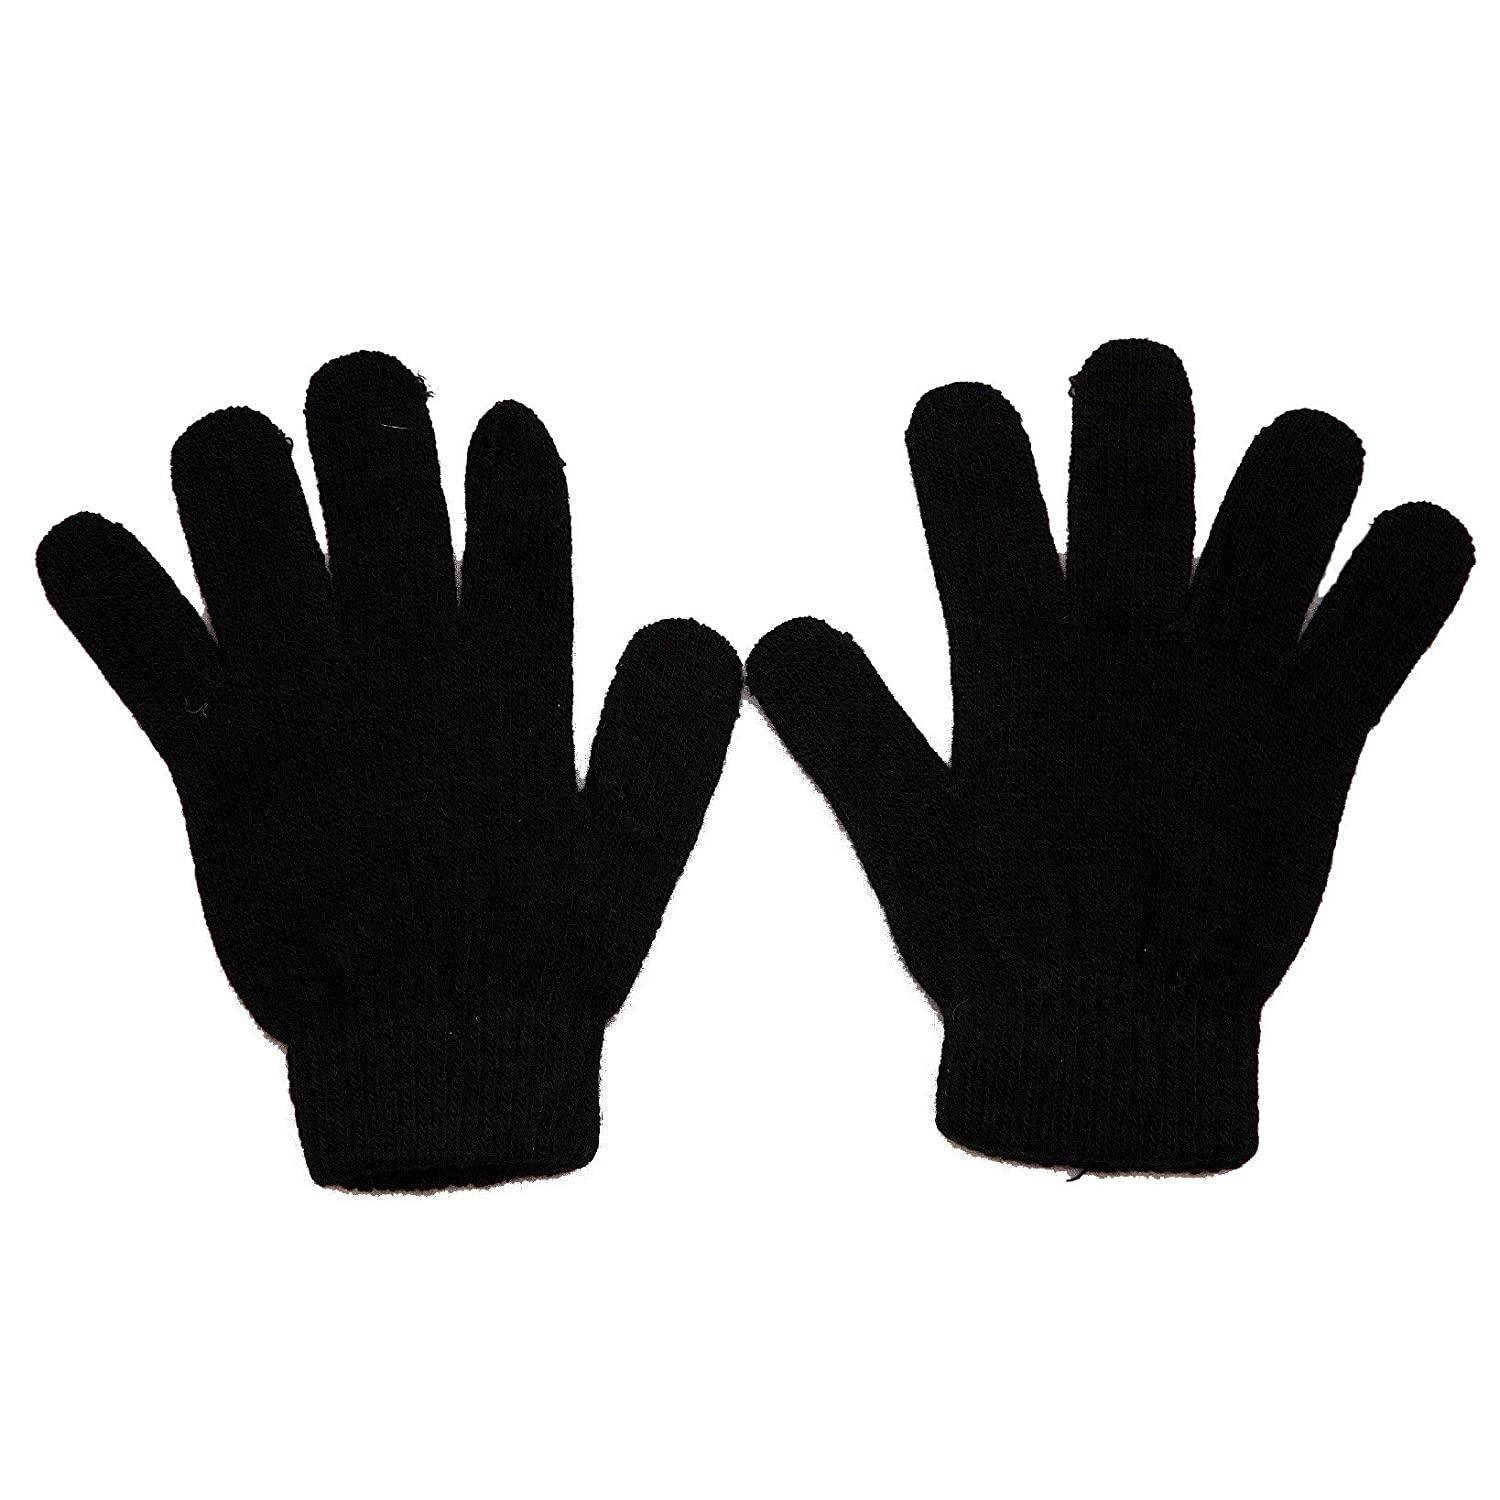 Children's Thermal Magic Gloves art no 7372 Black)